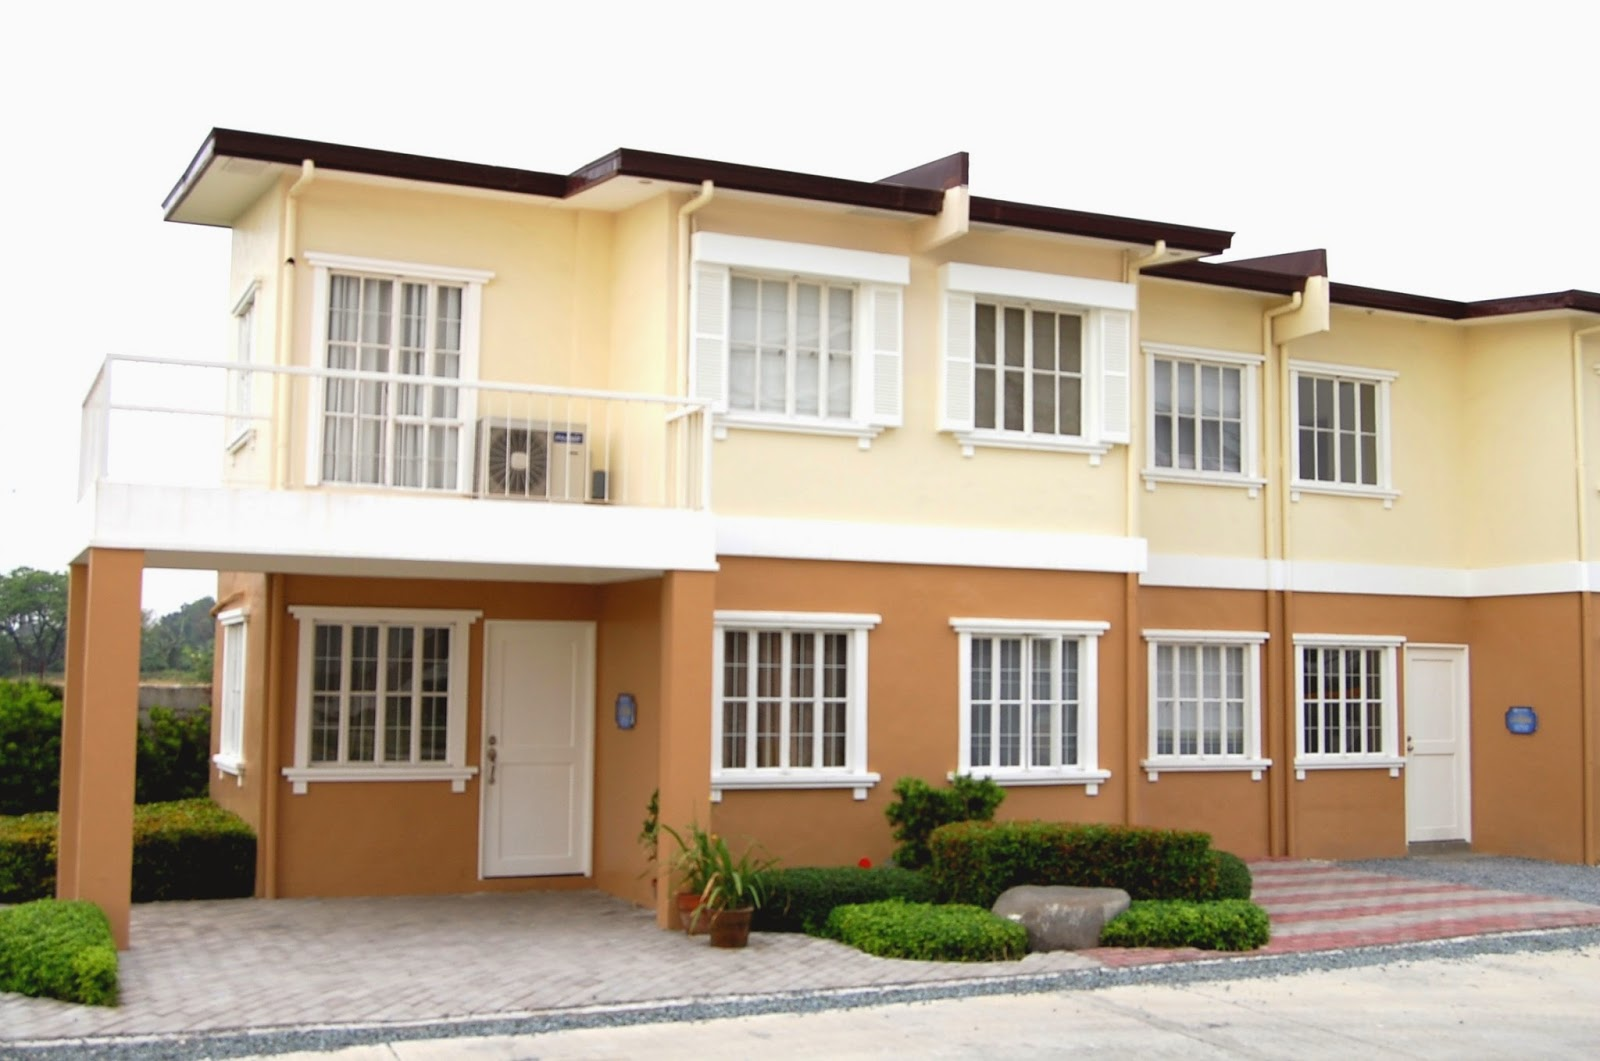 Lancaster new city in cavite philippines house and lot for New house models